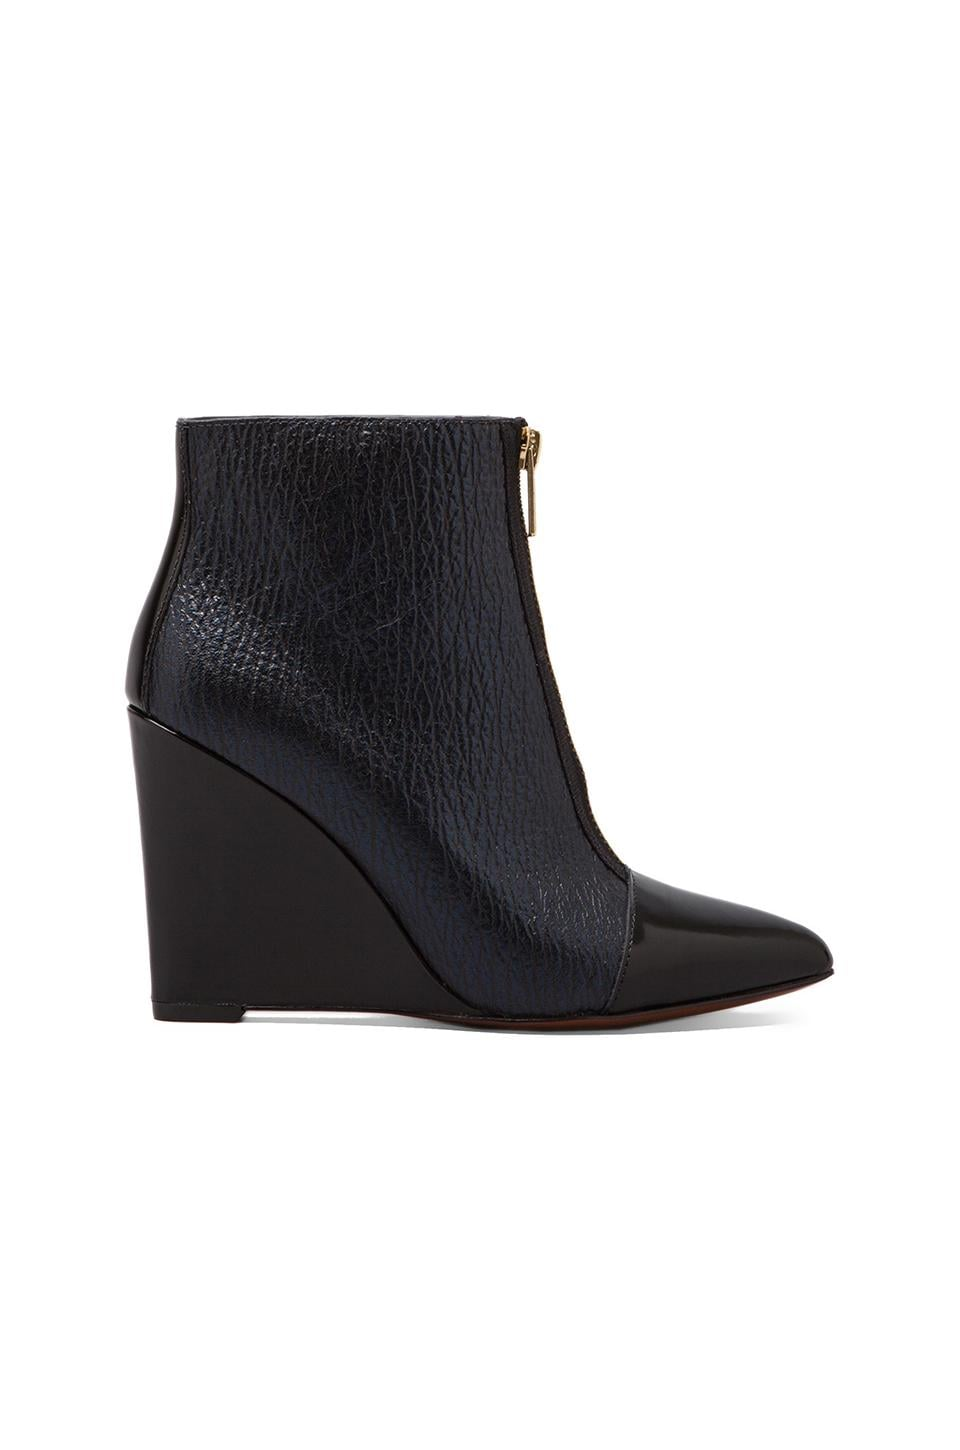 Marc by Marc Jacobs On Point 95mm Boot Wedge in Blue/Black